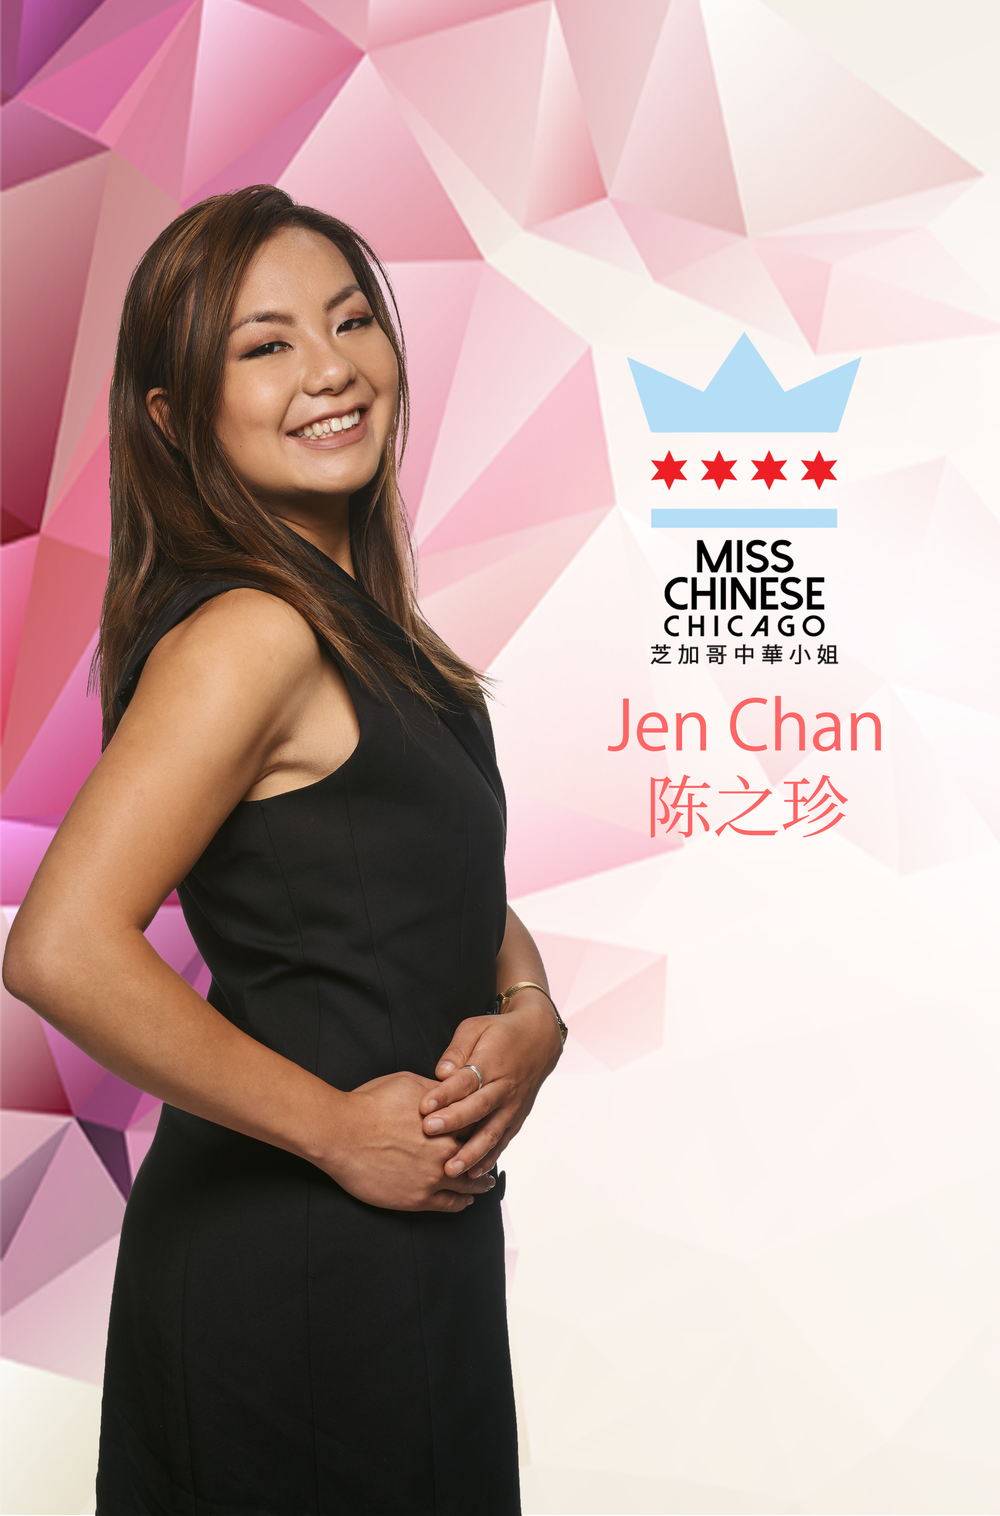 JenChan_MissChineseChicago2018.png